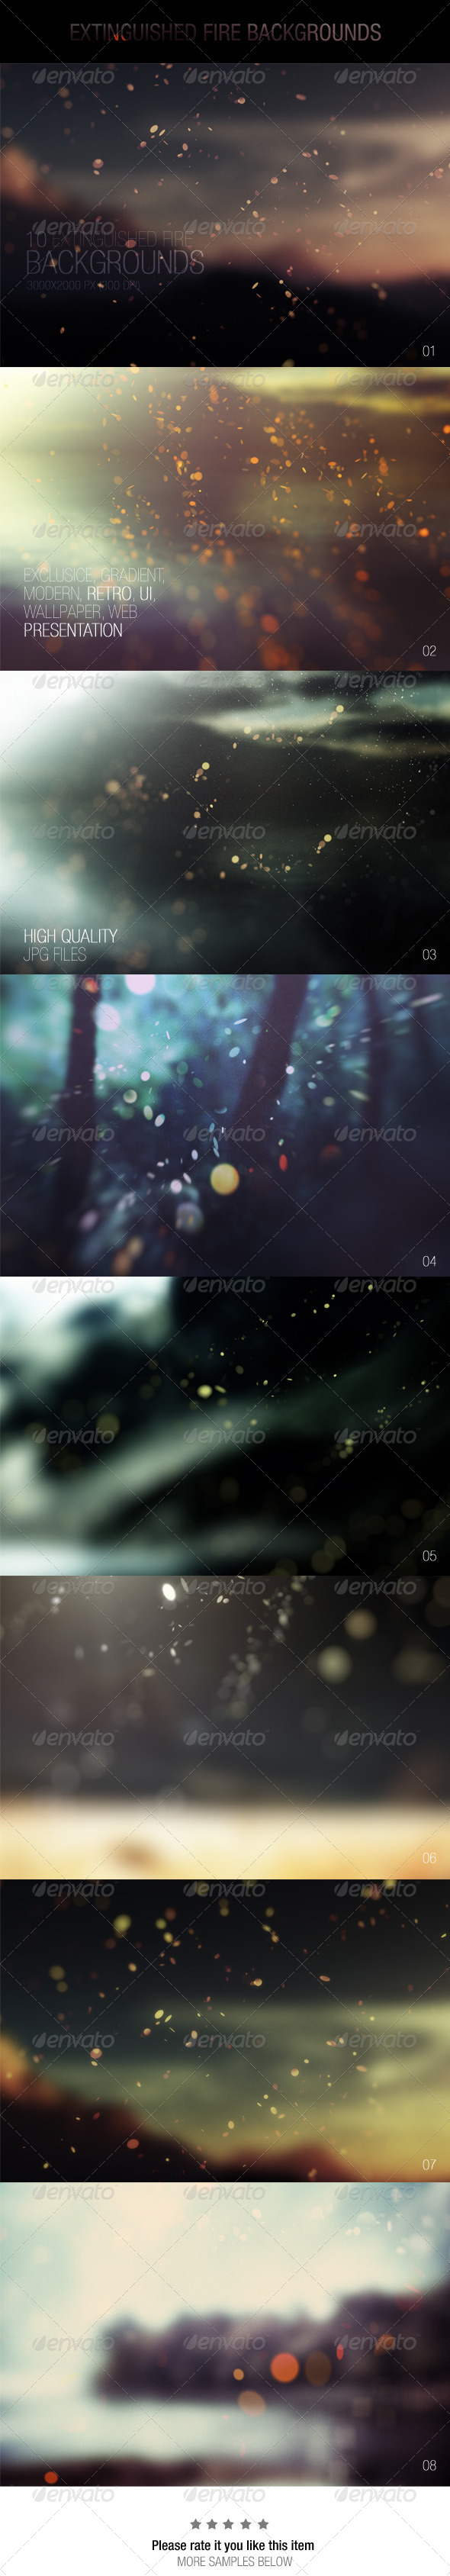 GraphicRiver Extinguished Fire Backgrounds 7501069